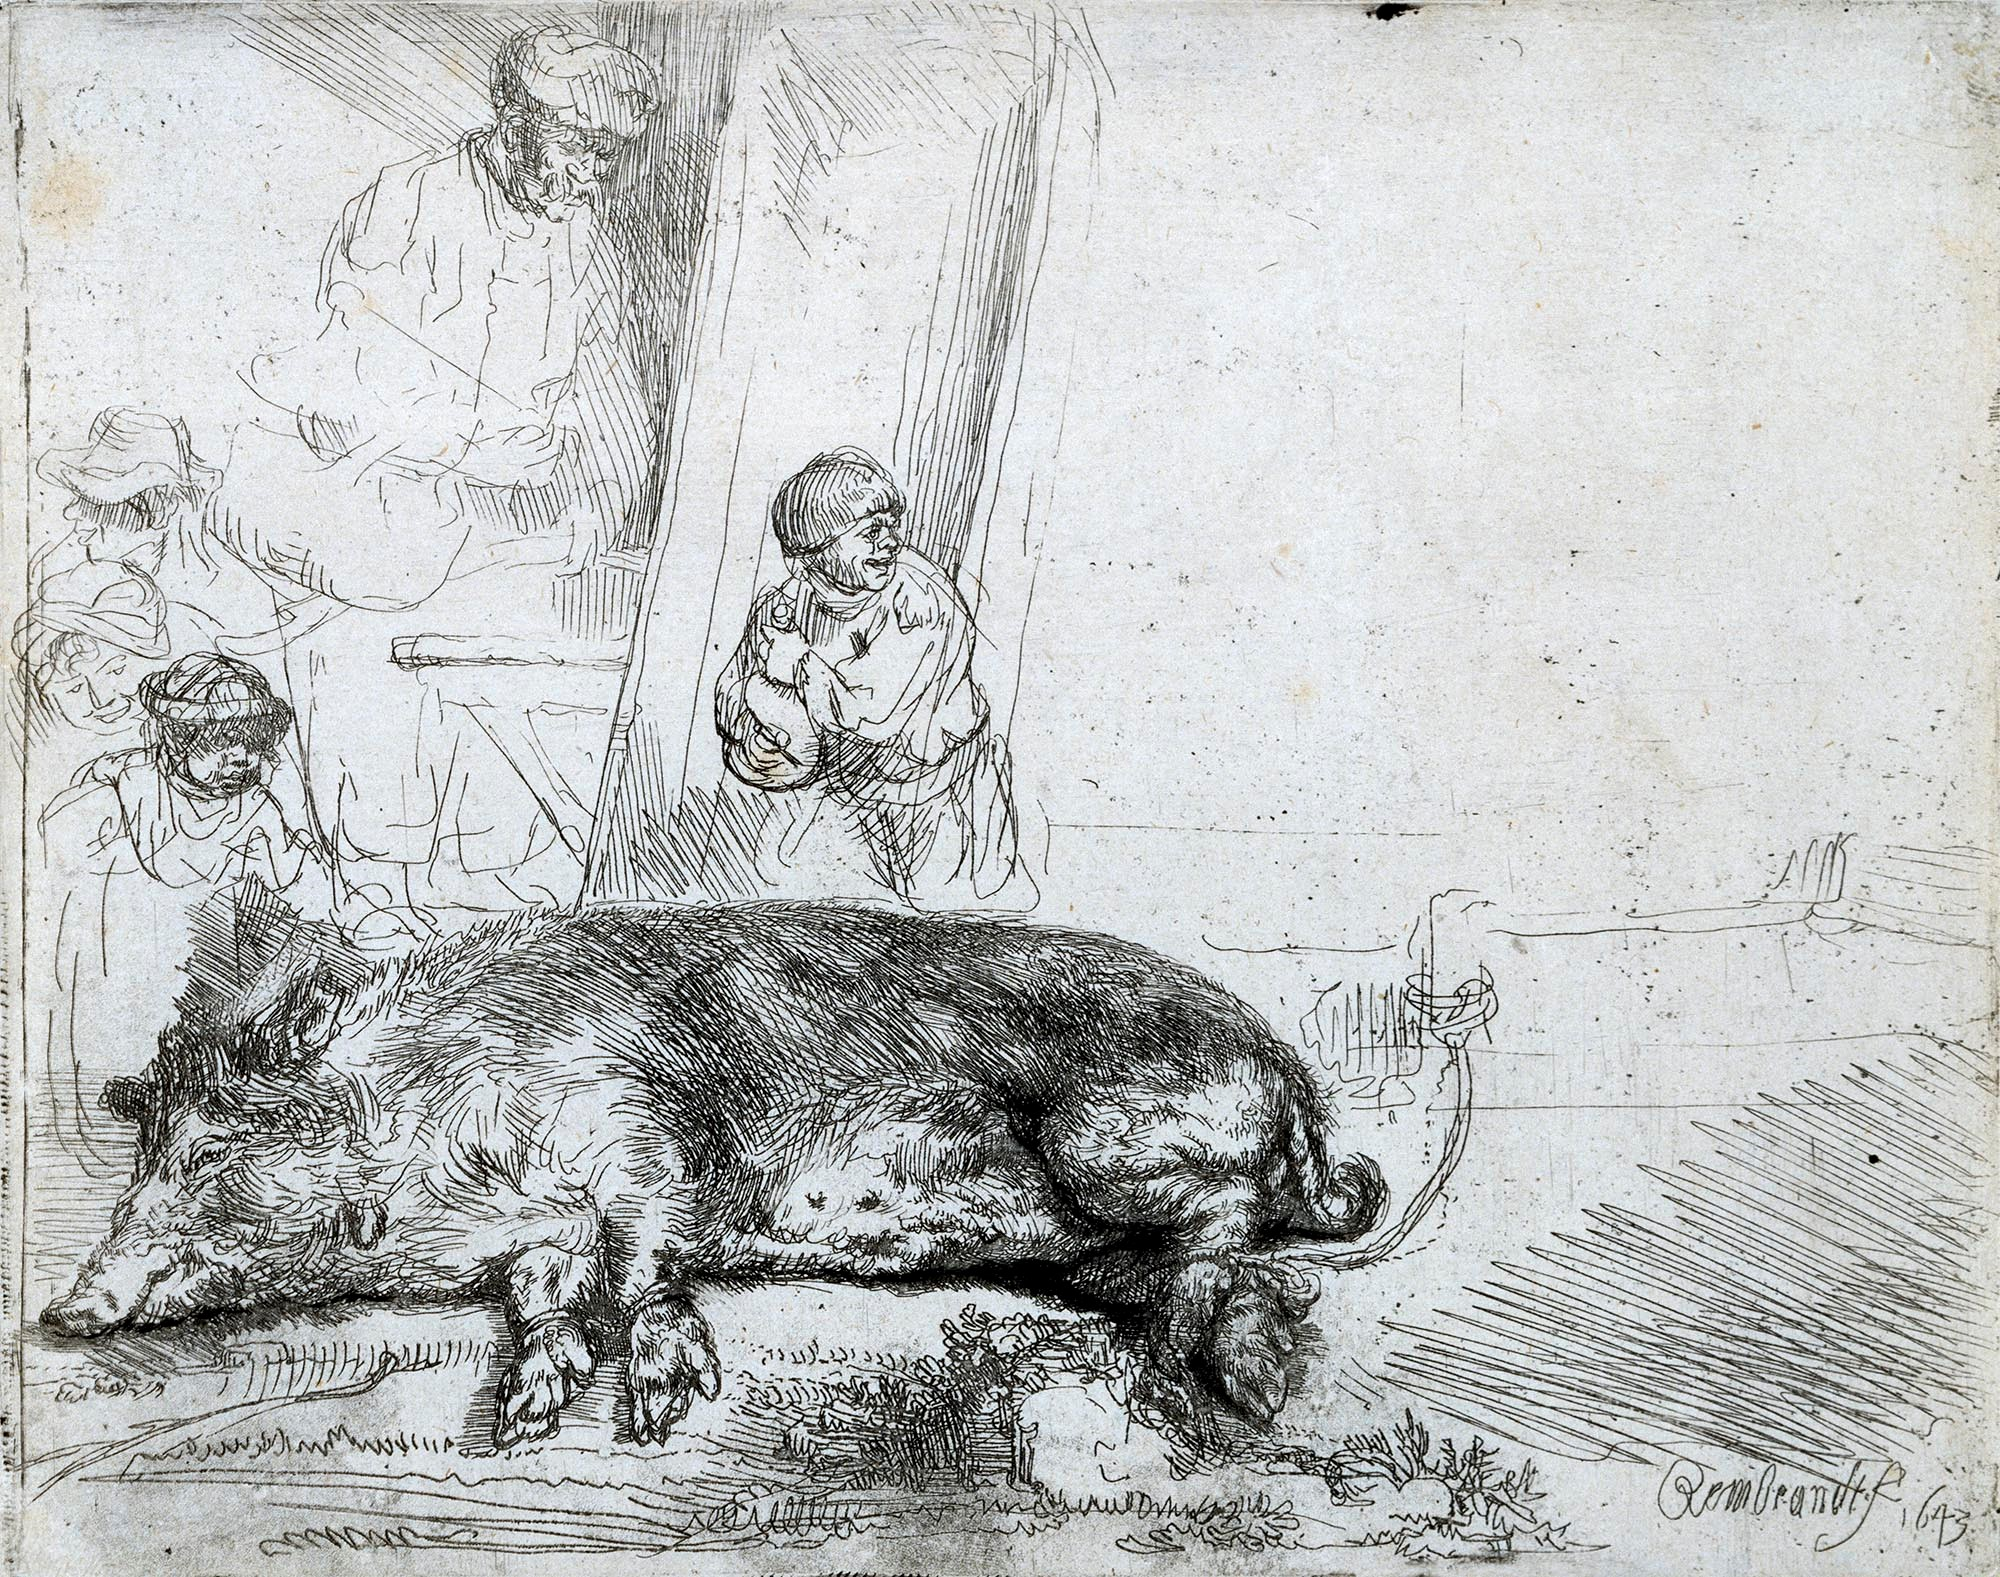 Rembrandt - The Hog